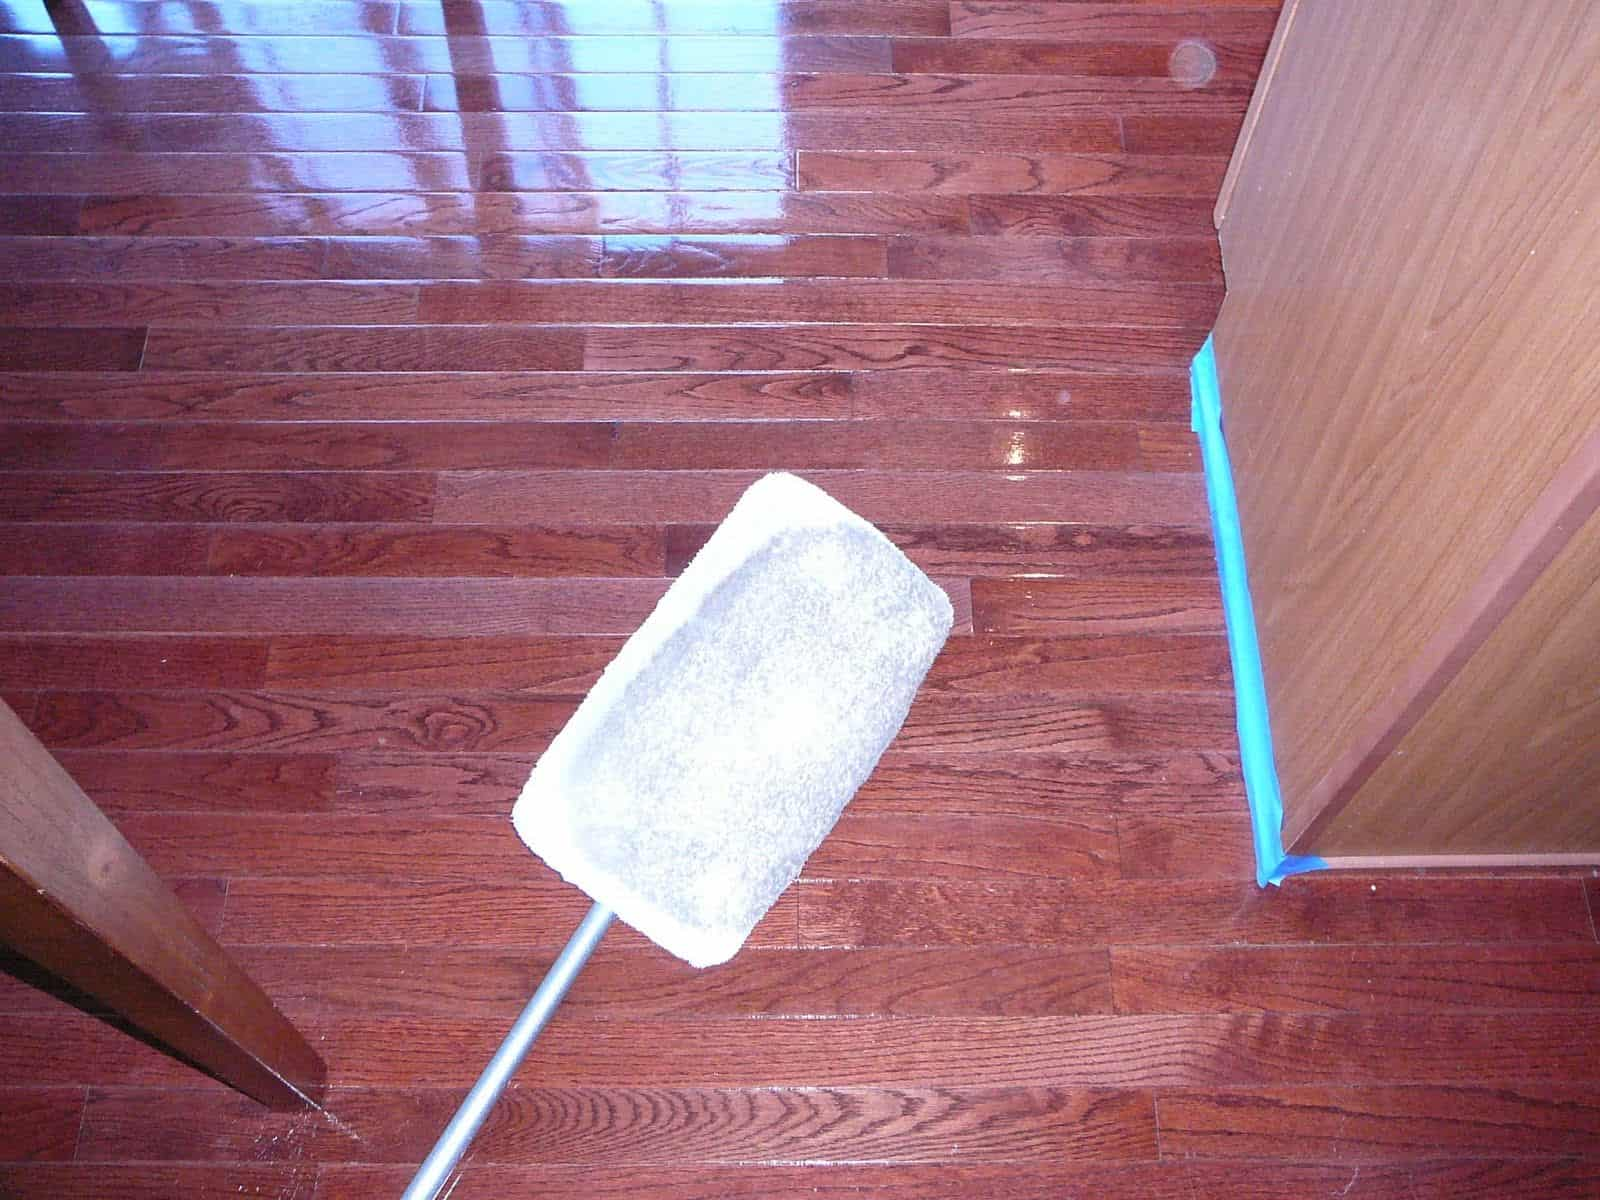 How To Clean Laminate Floors Natural Carpet Cleaning More - Clean laminate wood floors